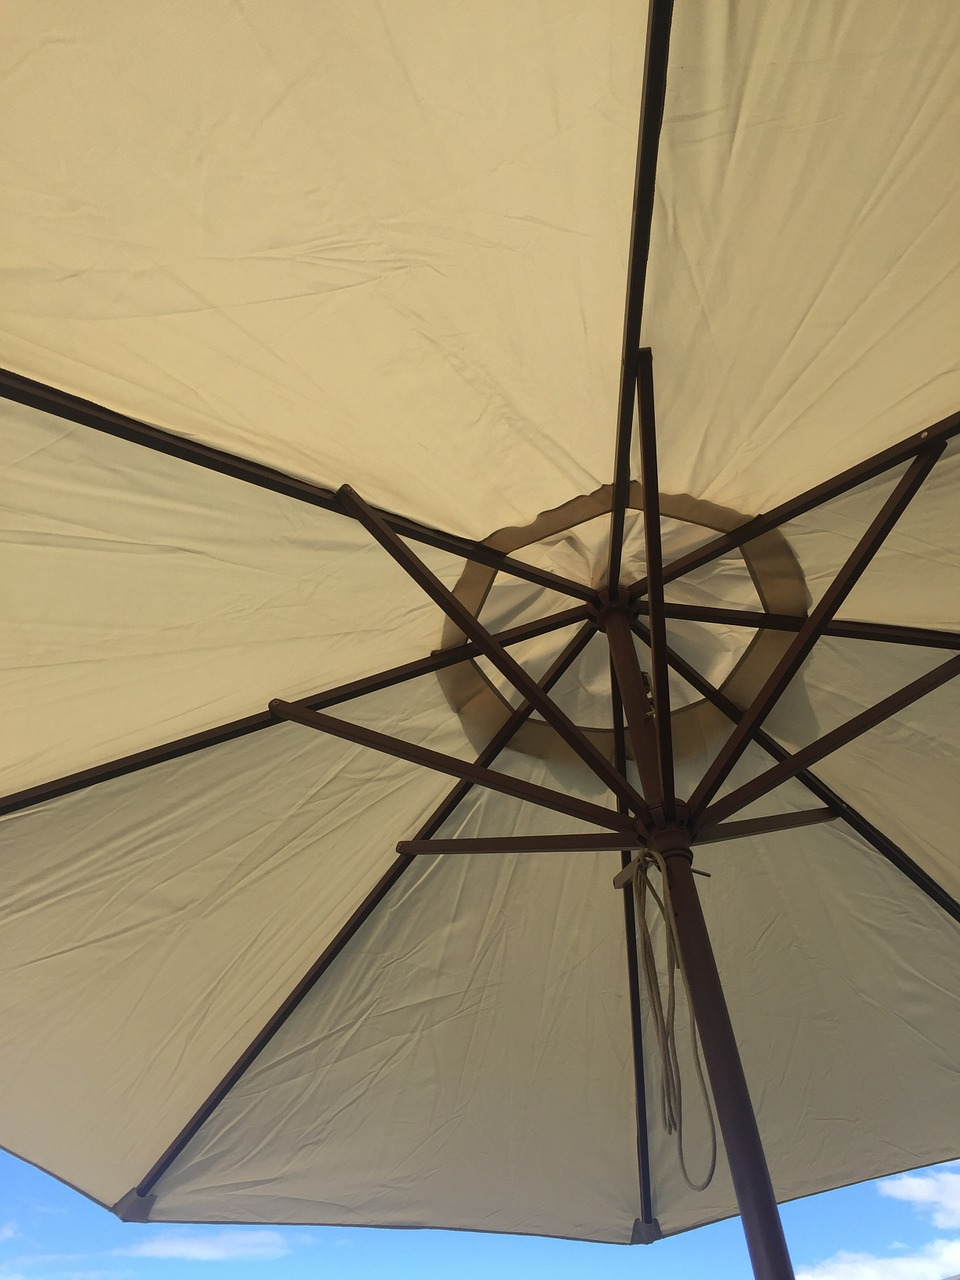 umbrella,underside,summer,free pictures, free photos, free images, royalty free, free illustrations, public domain